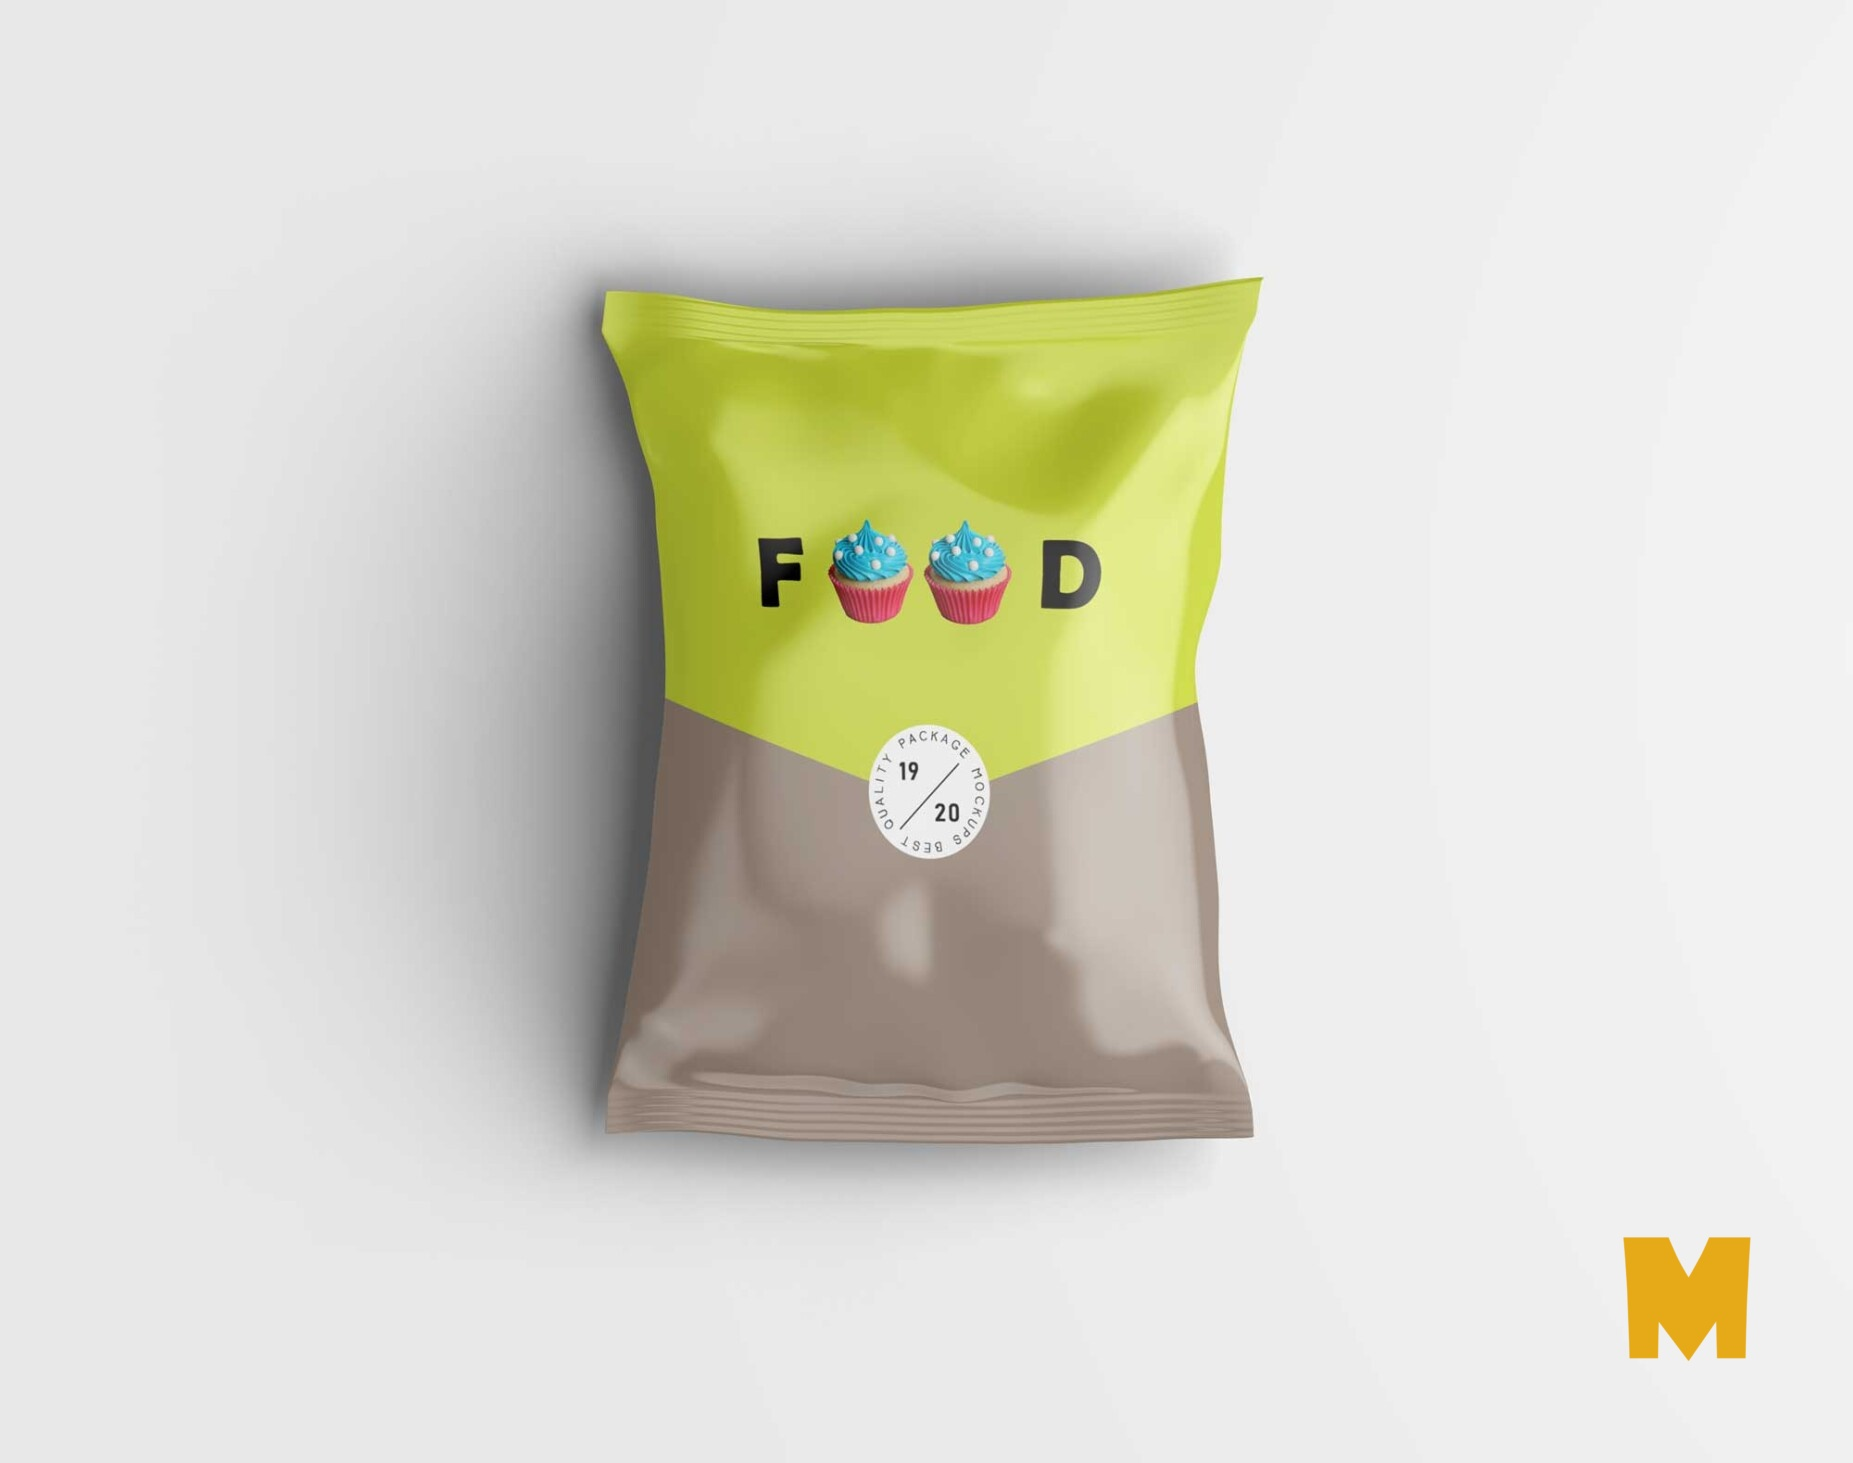 Free Oye Yes Pouch Label Mockuo